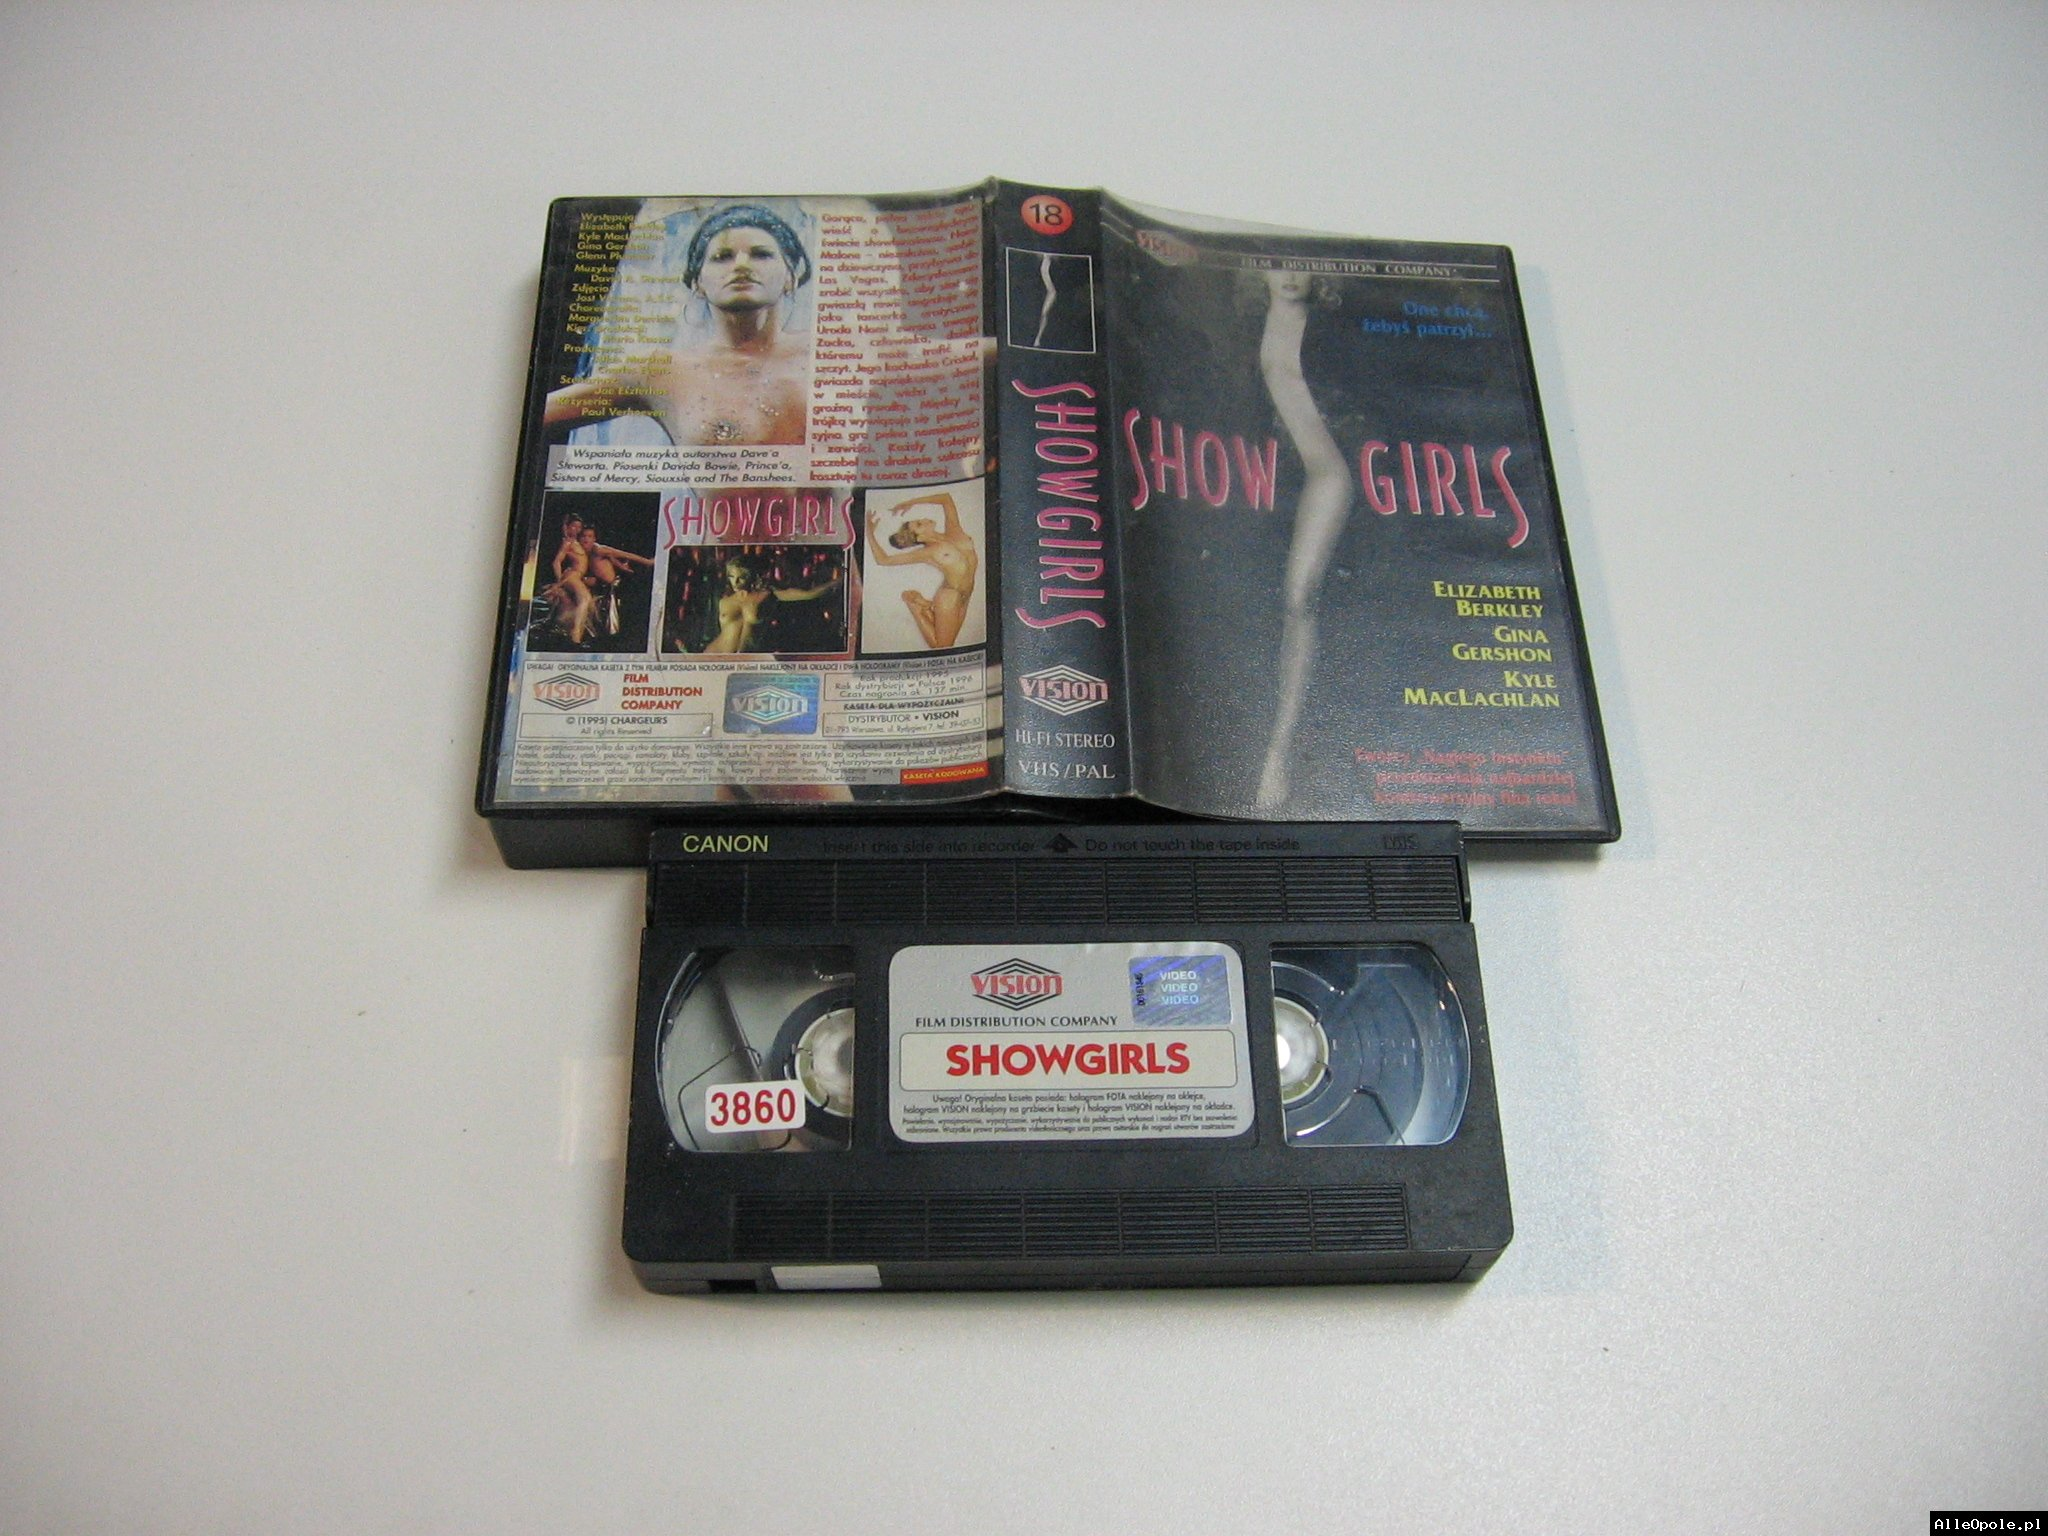 SHOWGIRS - VHS Kaseta Video - Opole 1846